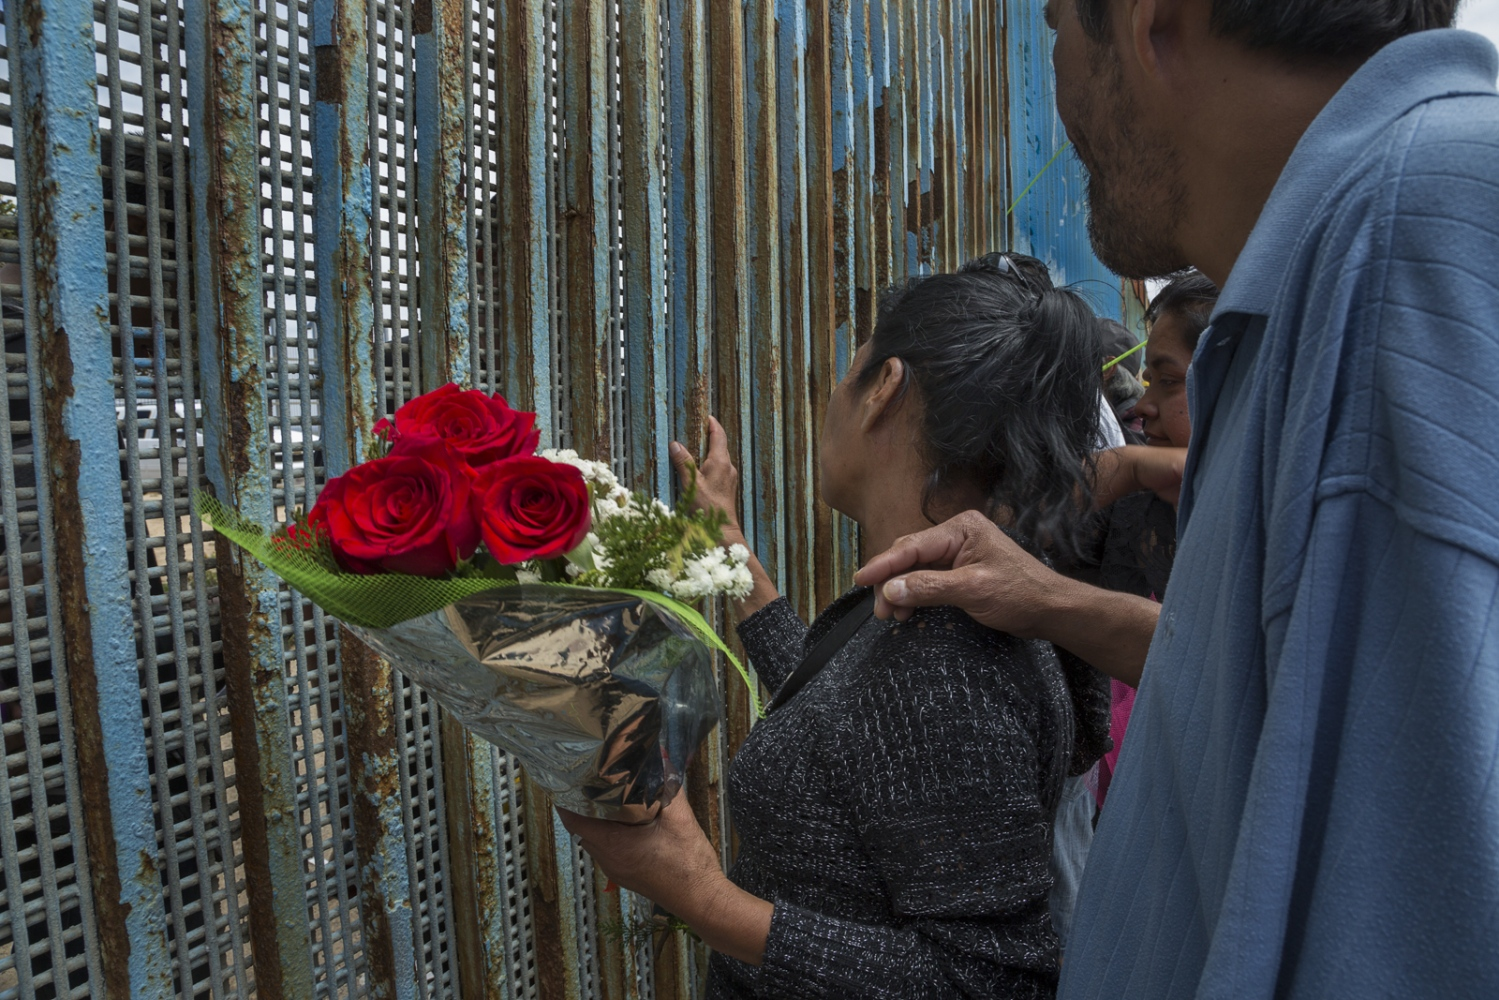 A woman talks to her children through the border wall on Mothers day 2016. An NGO distributed flower bouquets to all the mothers attending a binational event on the Tijuana side of the border.